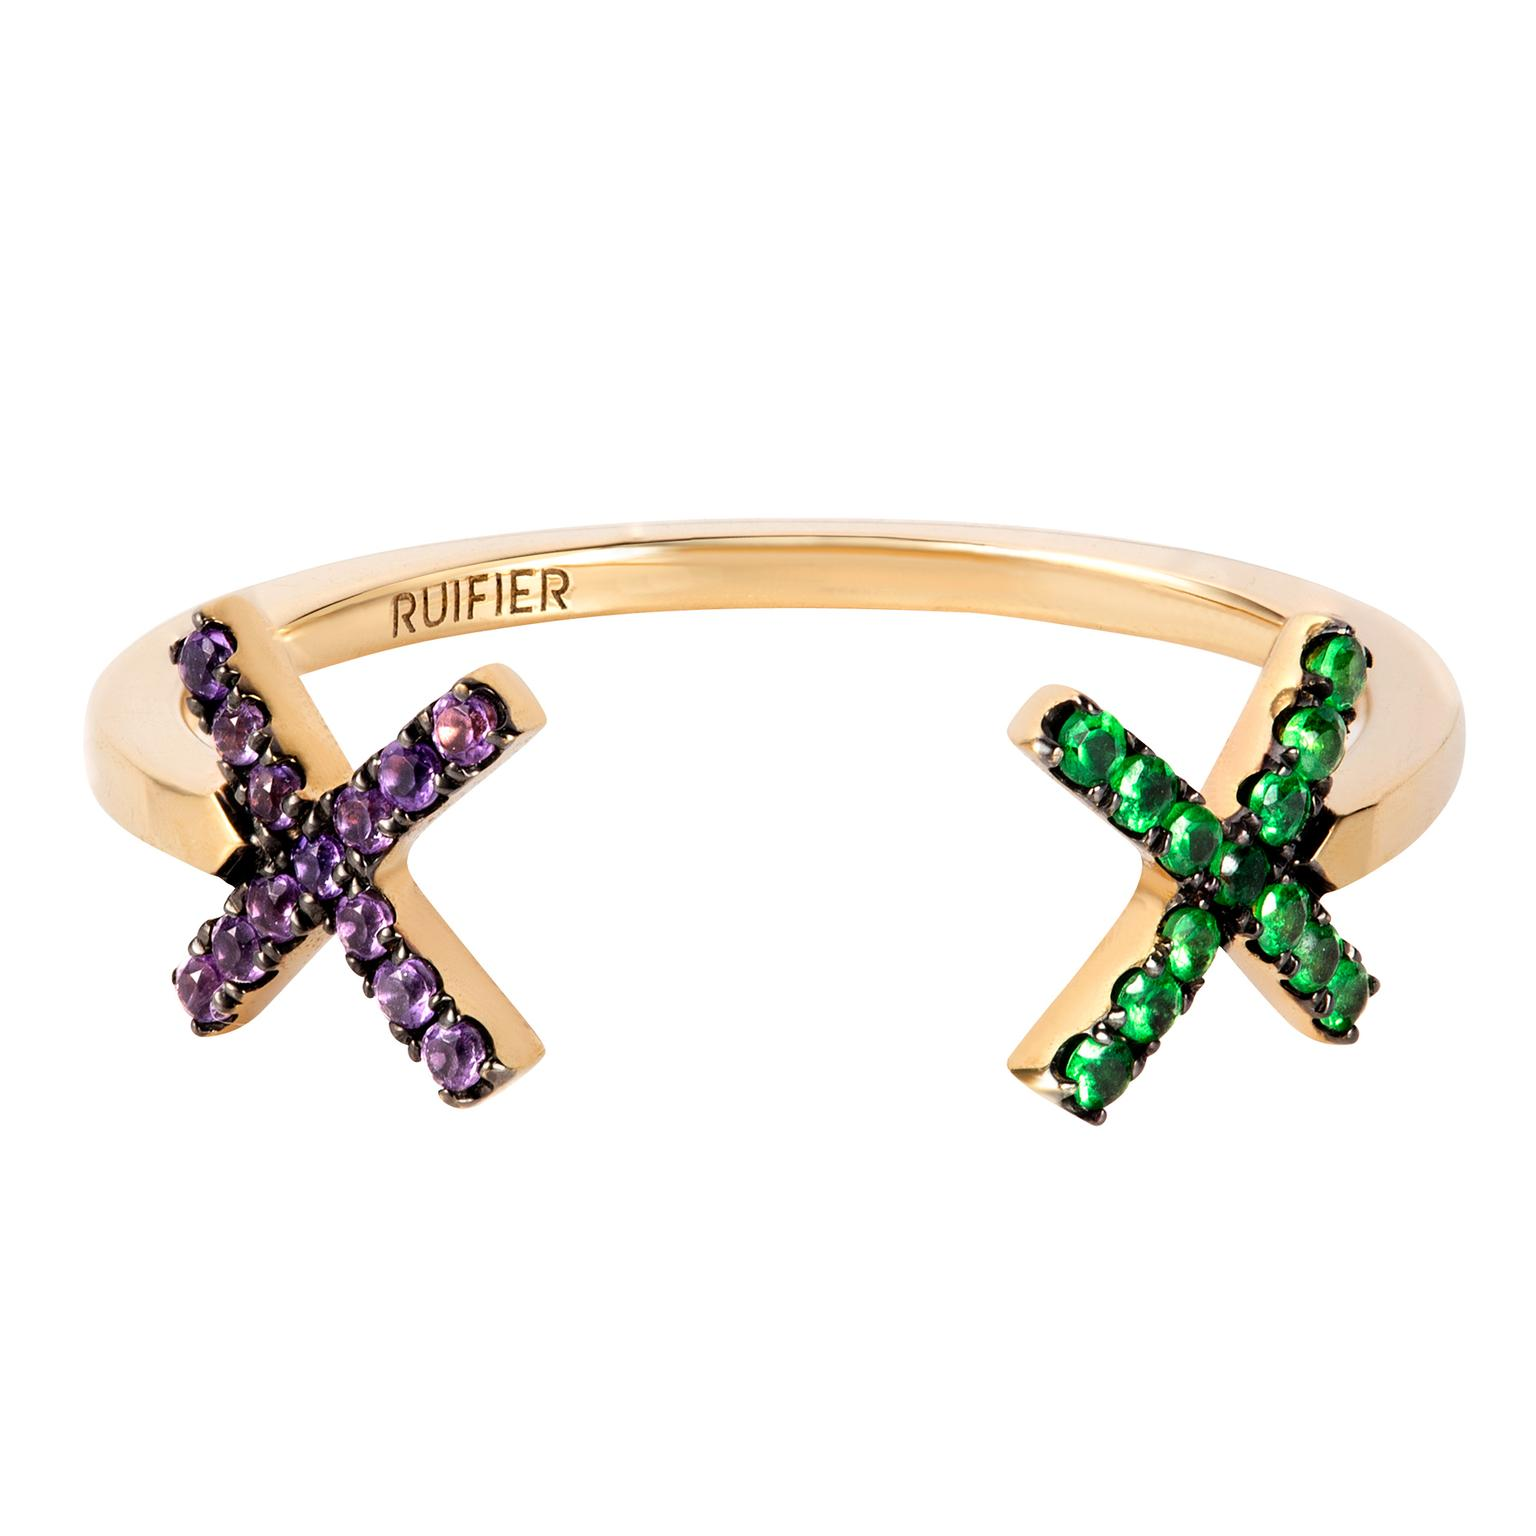 RUIFIER Visage Elements Cross Ring